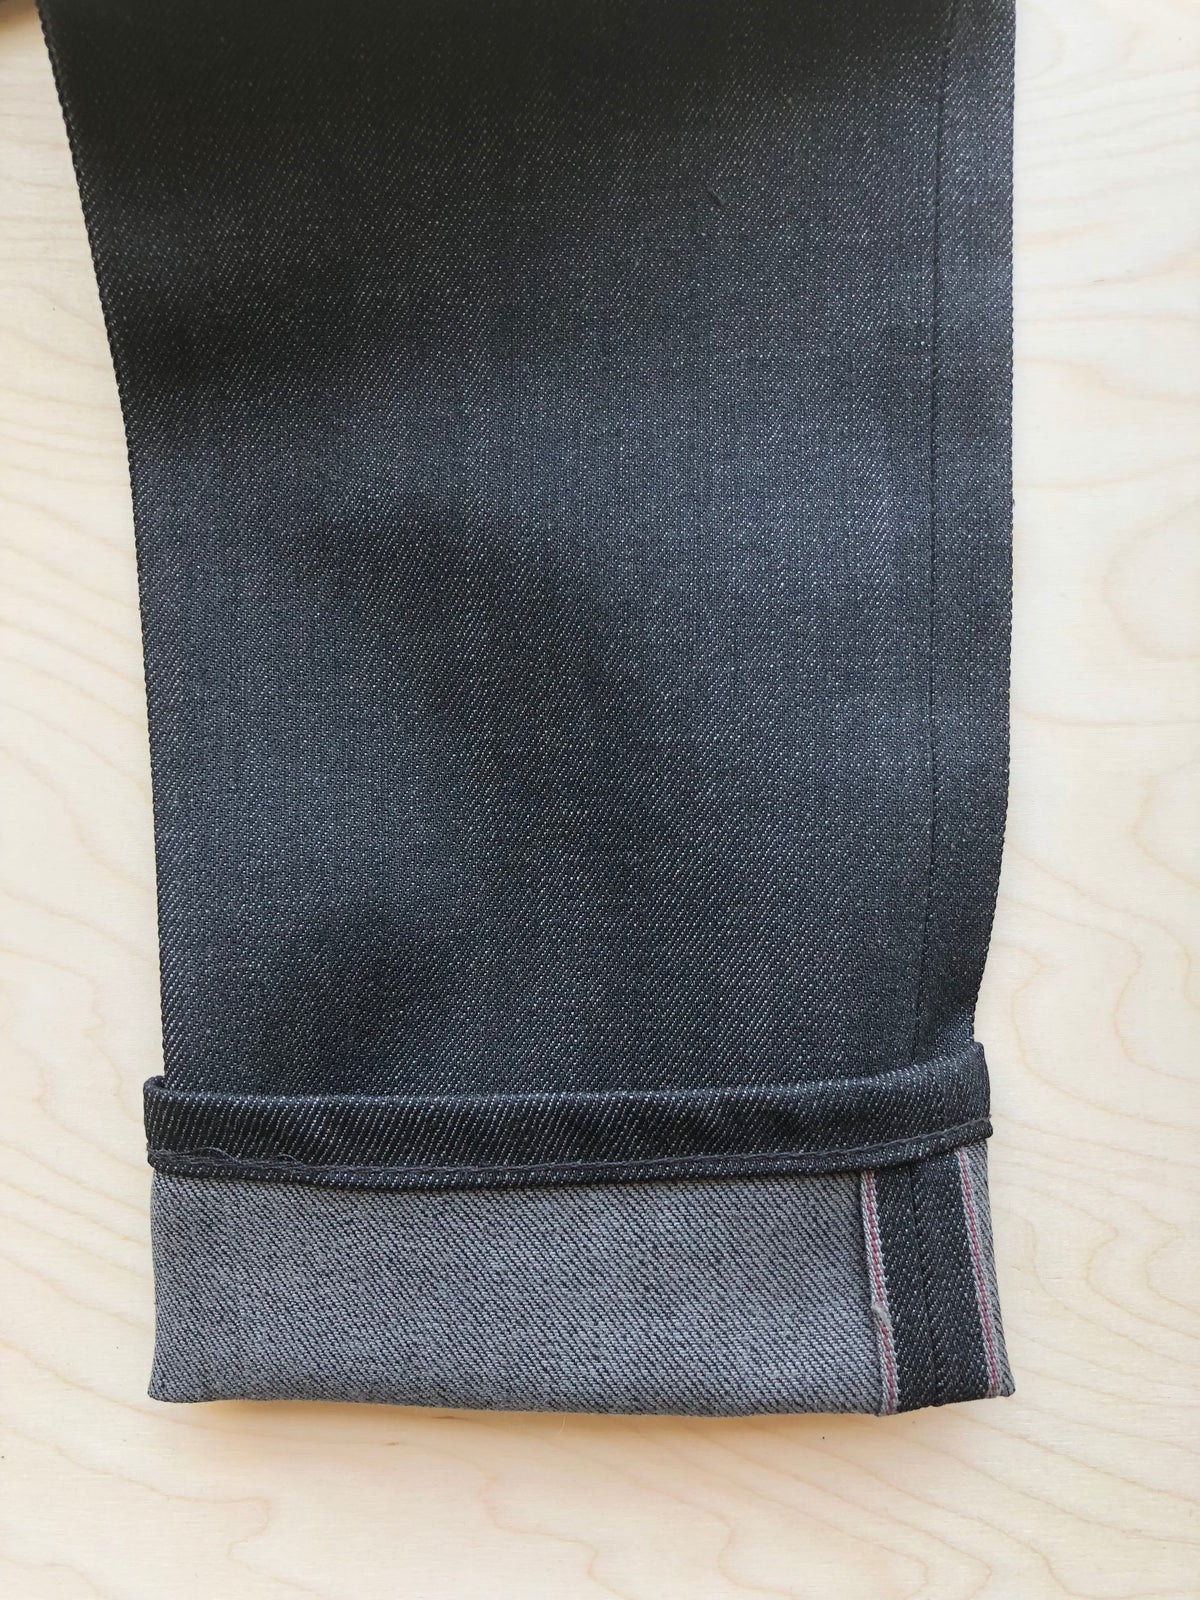 Super Guy | 12.5 oz | Black x Grey Stretch Selvedge